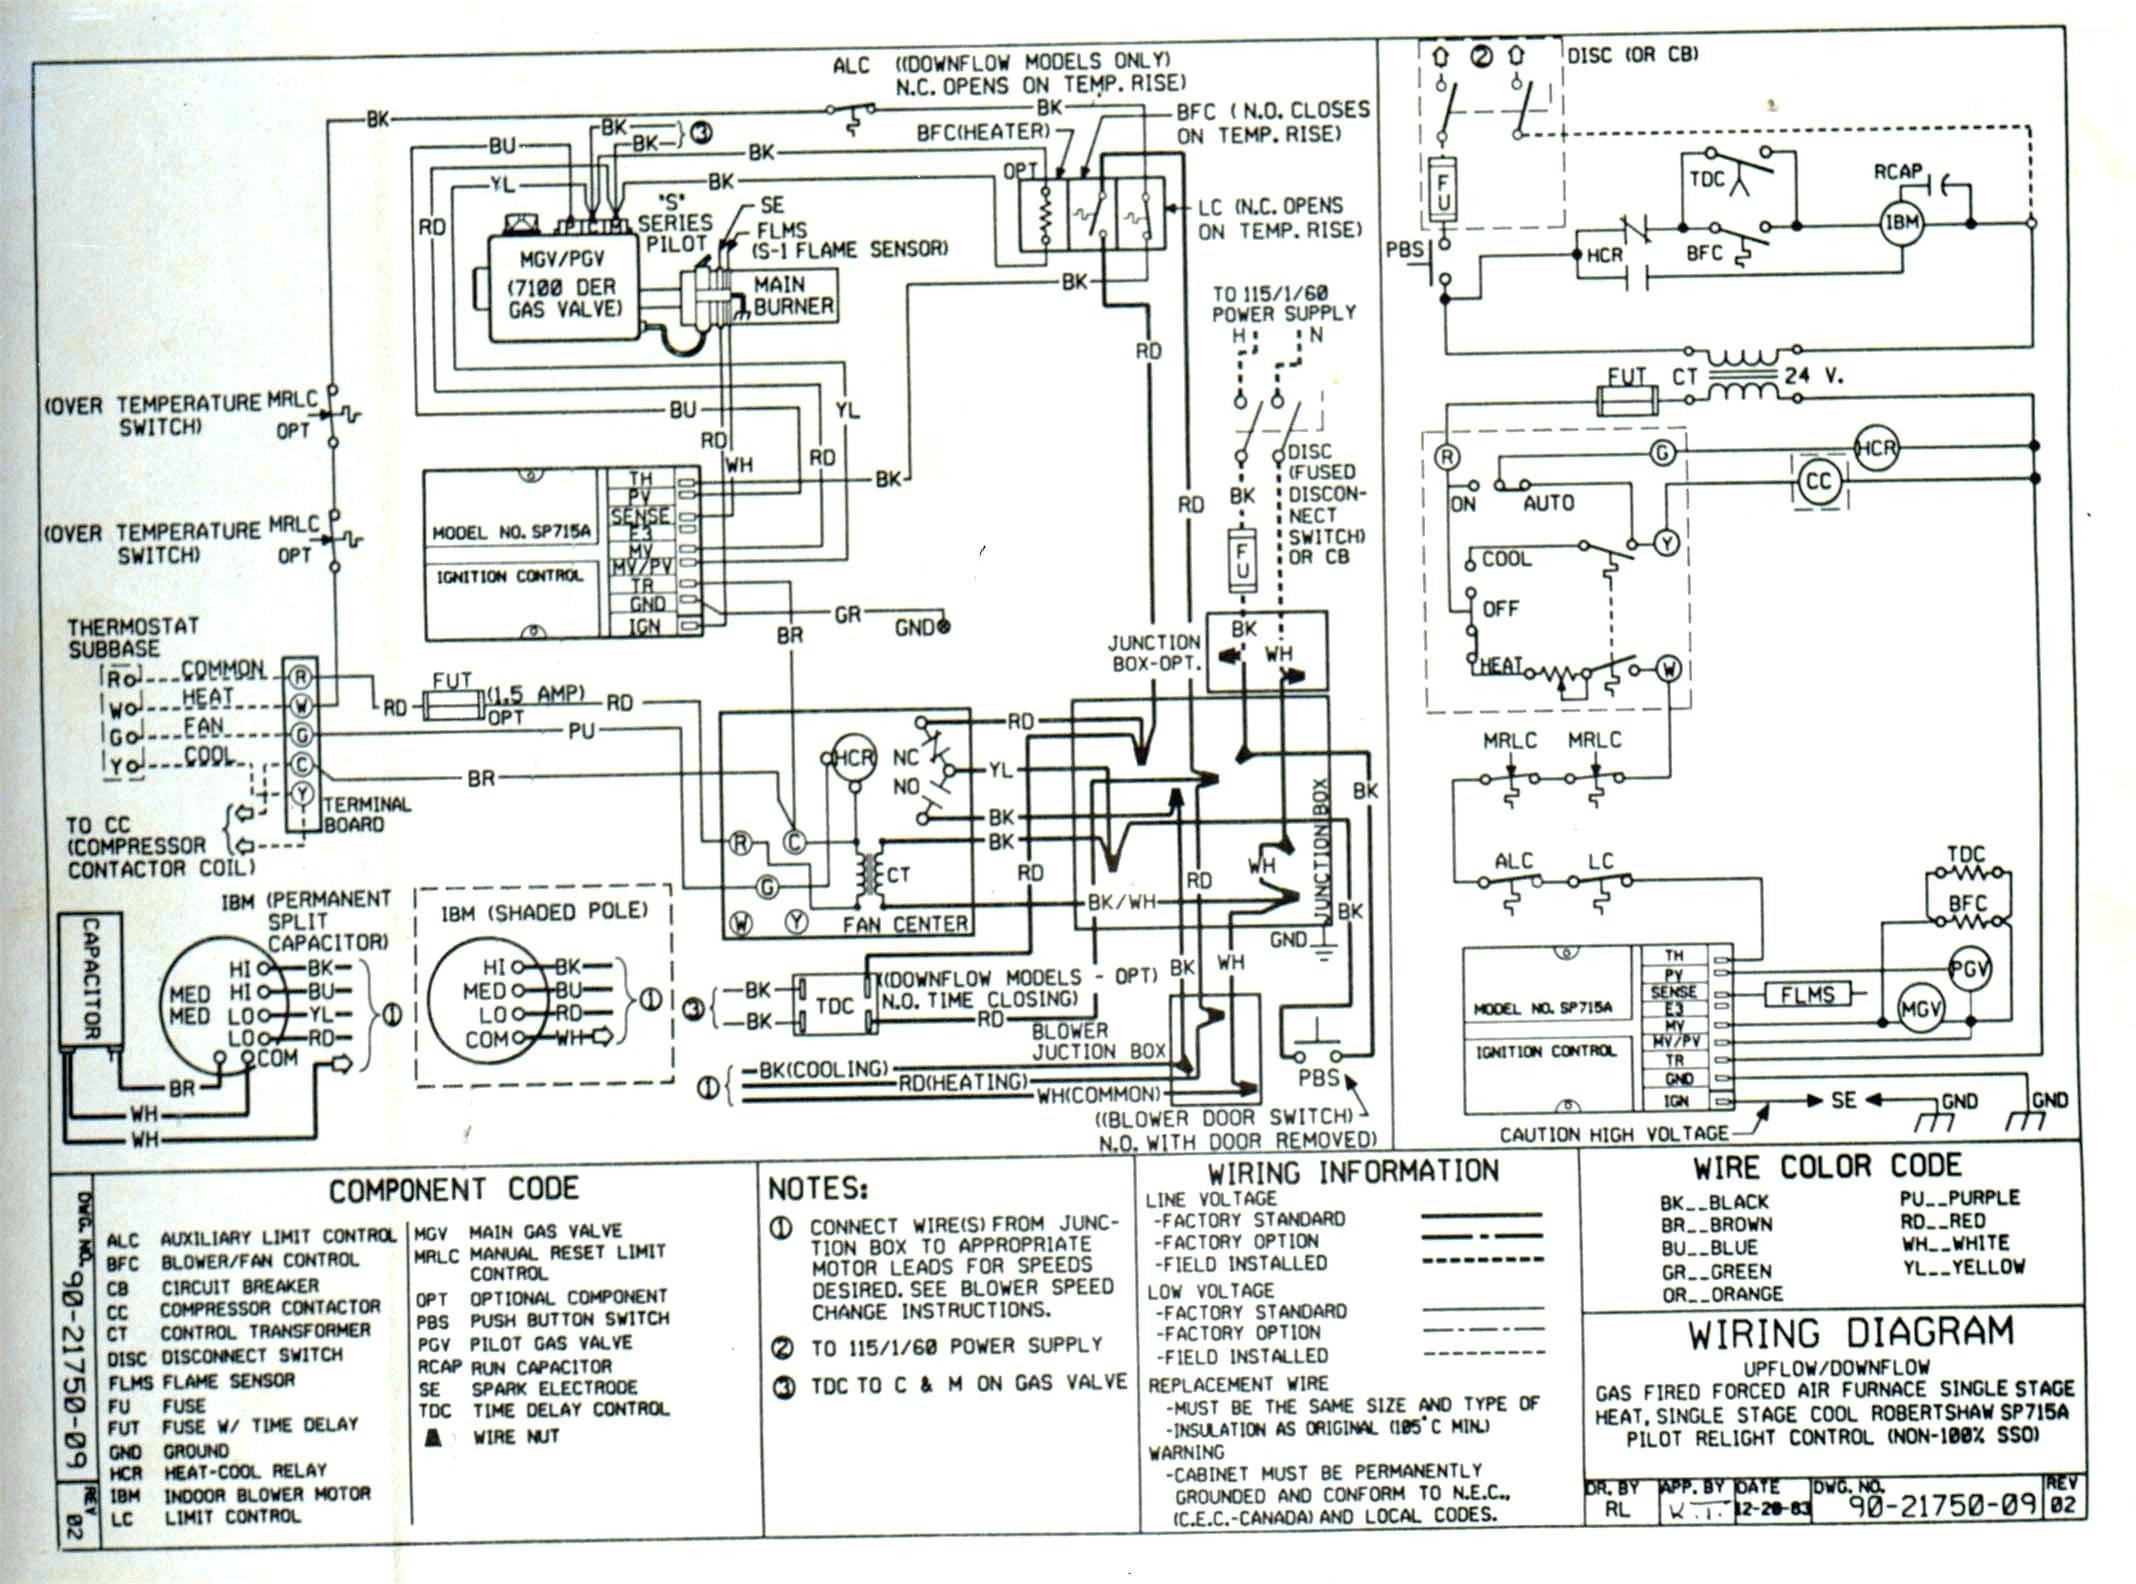 trane ac wiring diagram Download-Wiring Diagram S Plan Awesome Trane Thermostat Wiring Diagram Luxury Wiring Diagram For Trane 14-o